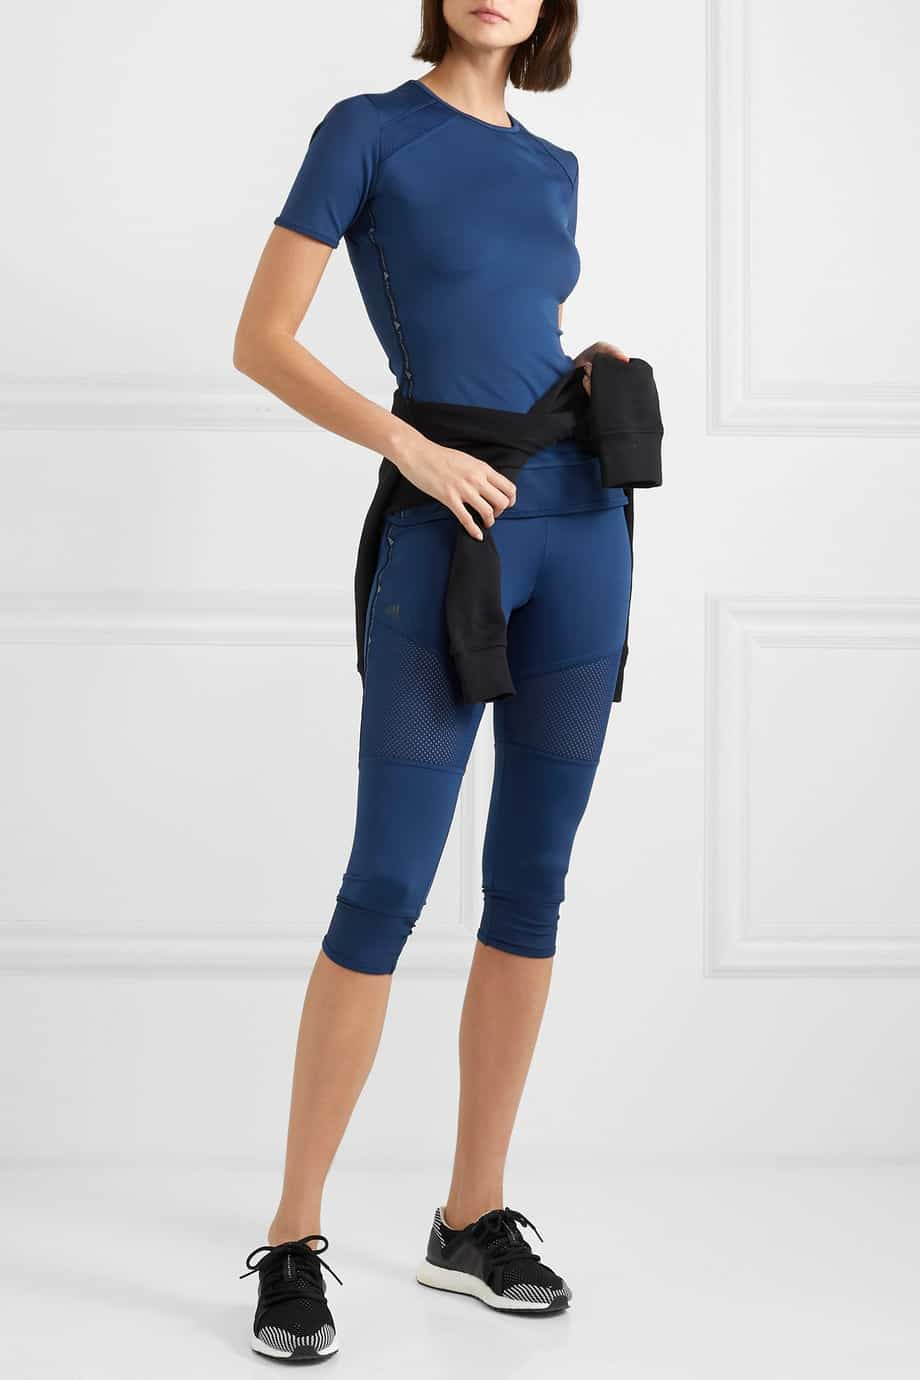 Sustainable Workout Gear